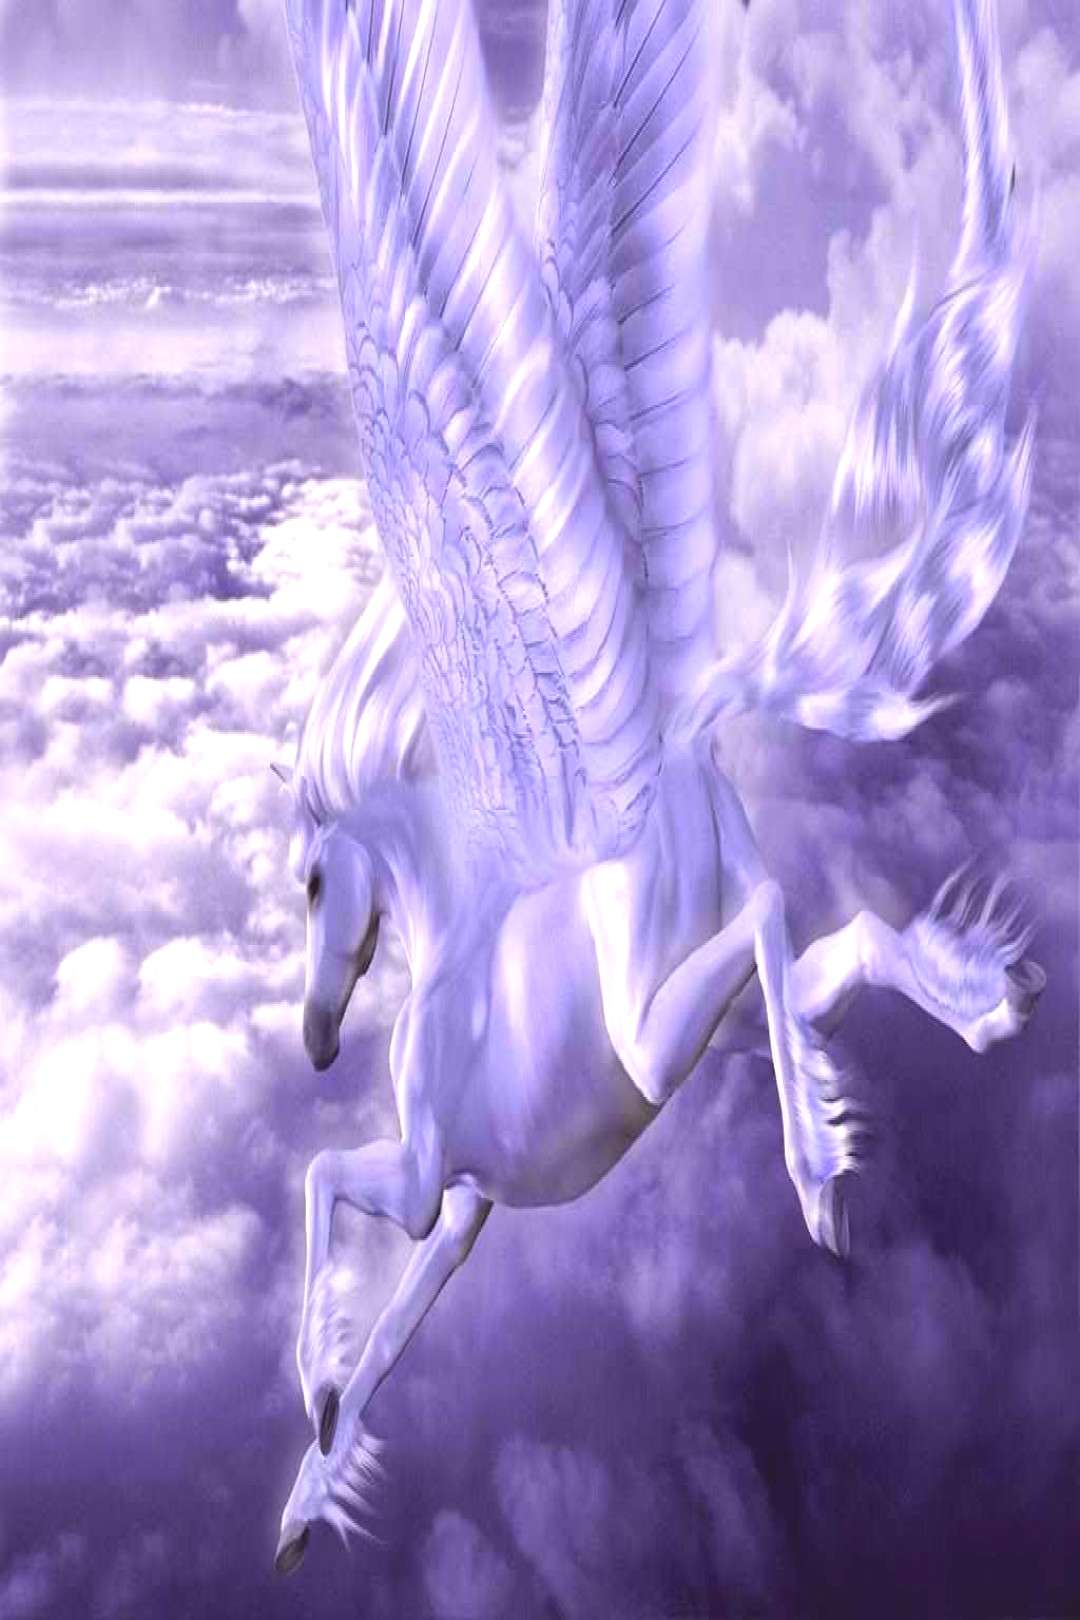 White Pegasus Wallpaper Phone 7 Top White Pegasus Wallpaper Phone